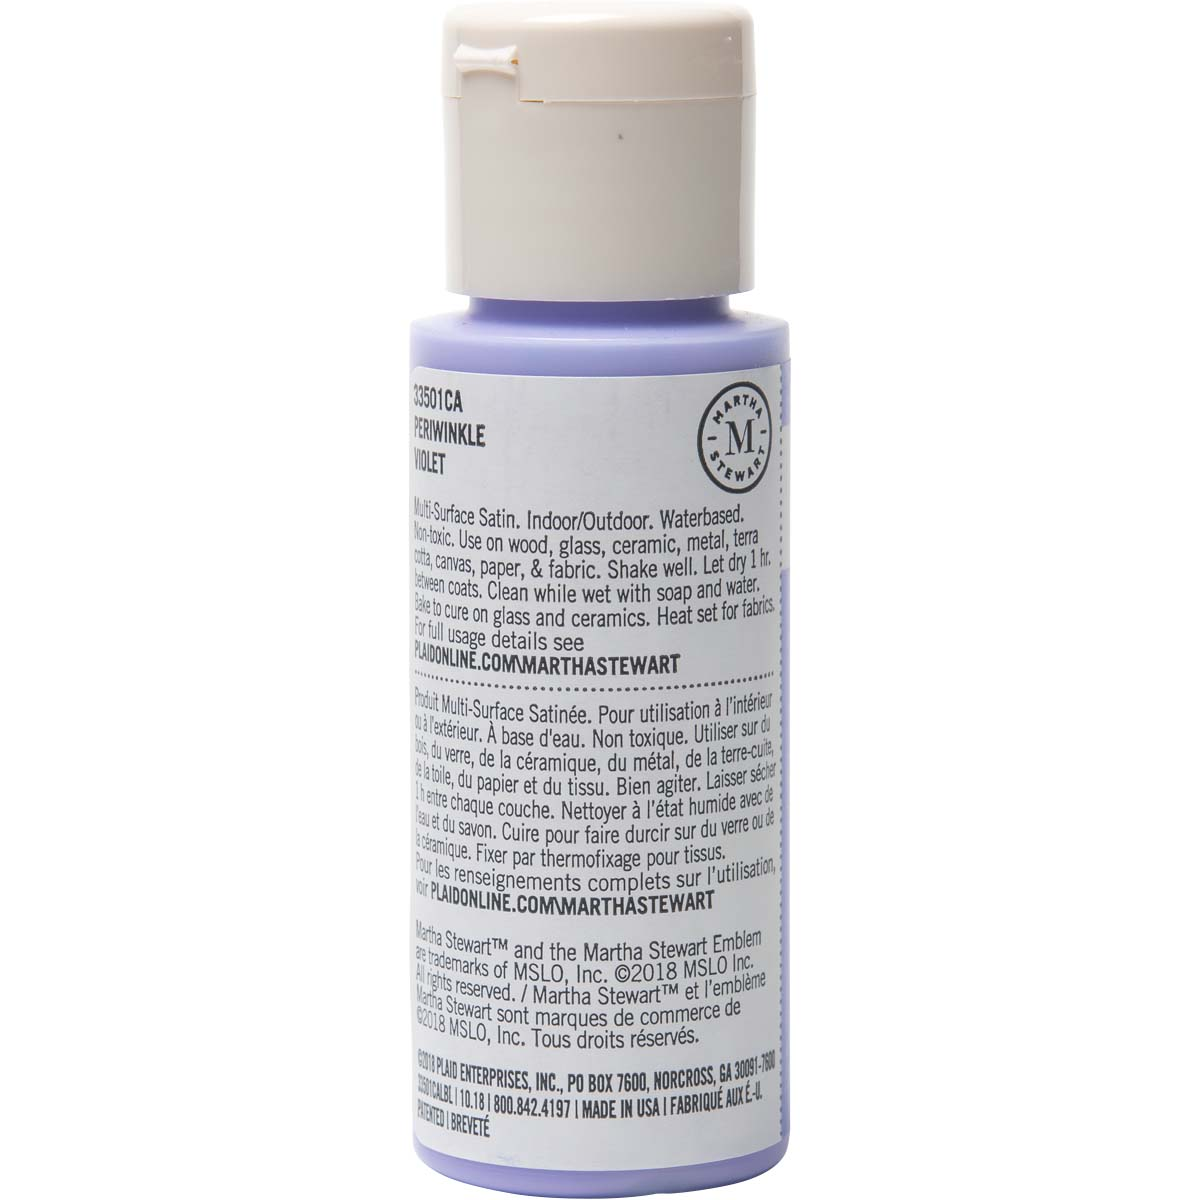 Martha Stewart ® Multi-Surface Satin Acrylic Craft Paint - Periwinkle, 2 oz. - 33501CA